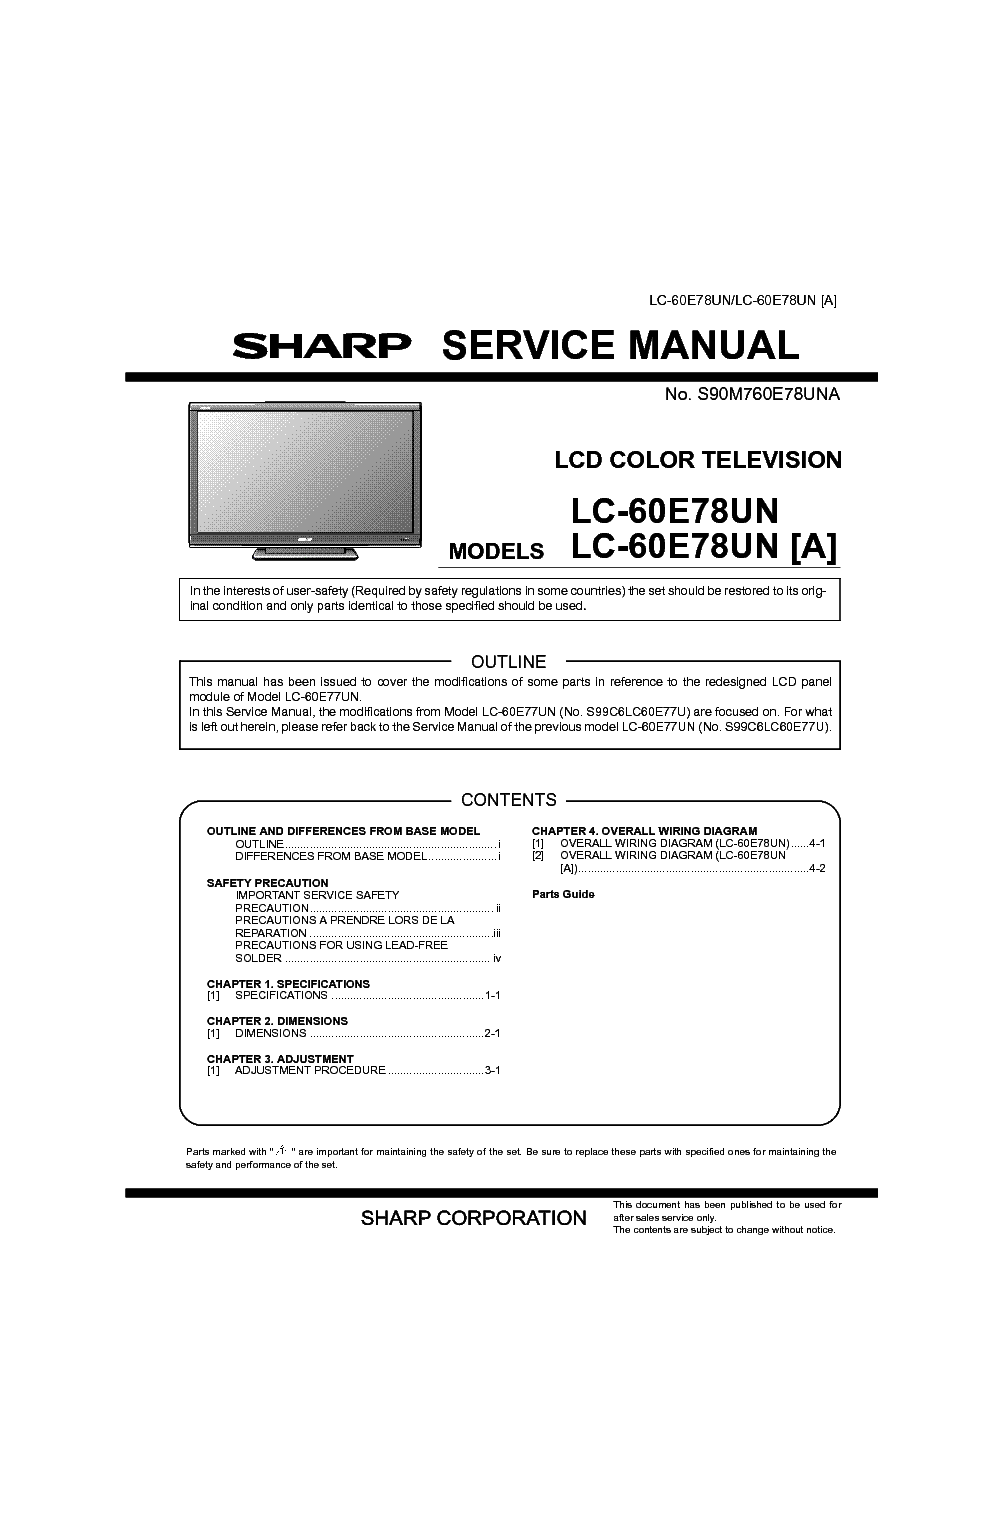 sharp lc 60e78un a service manual download schematics eeprom rh elektrotanya com